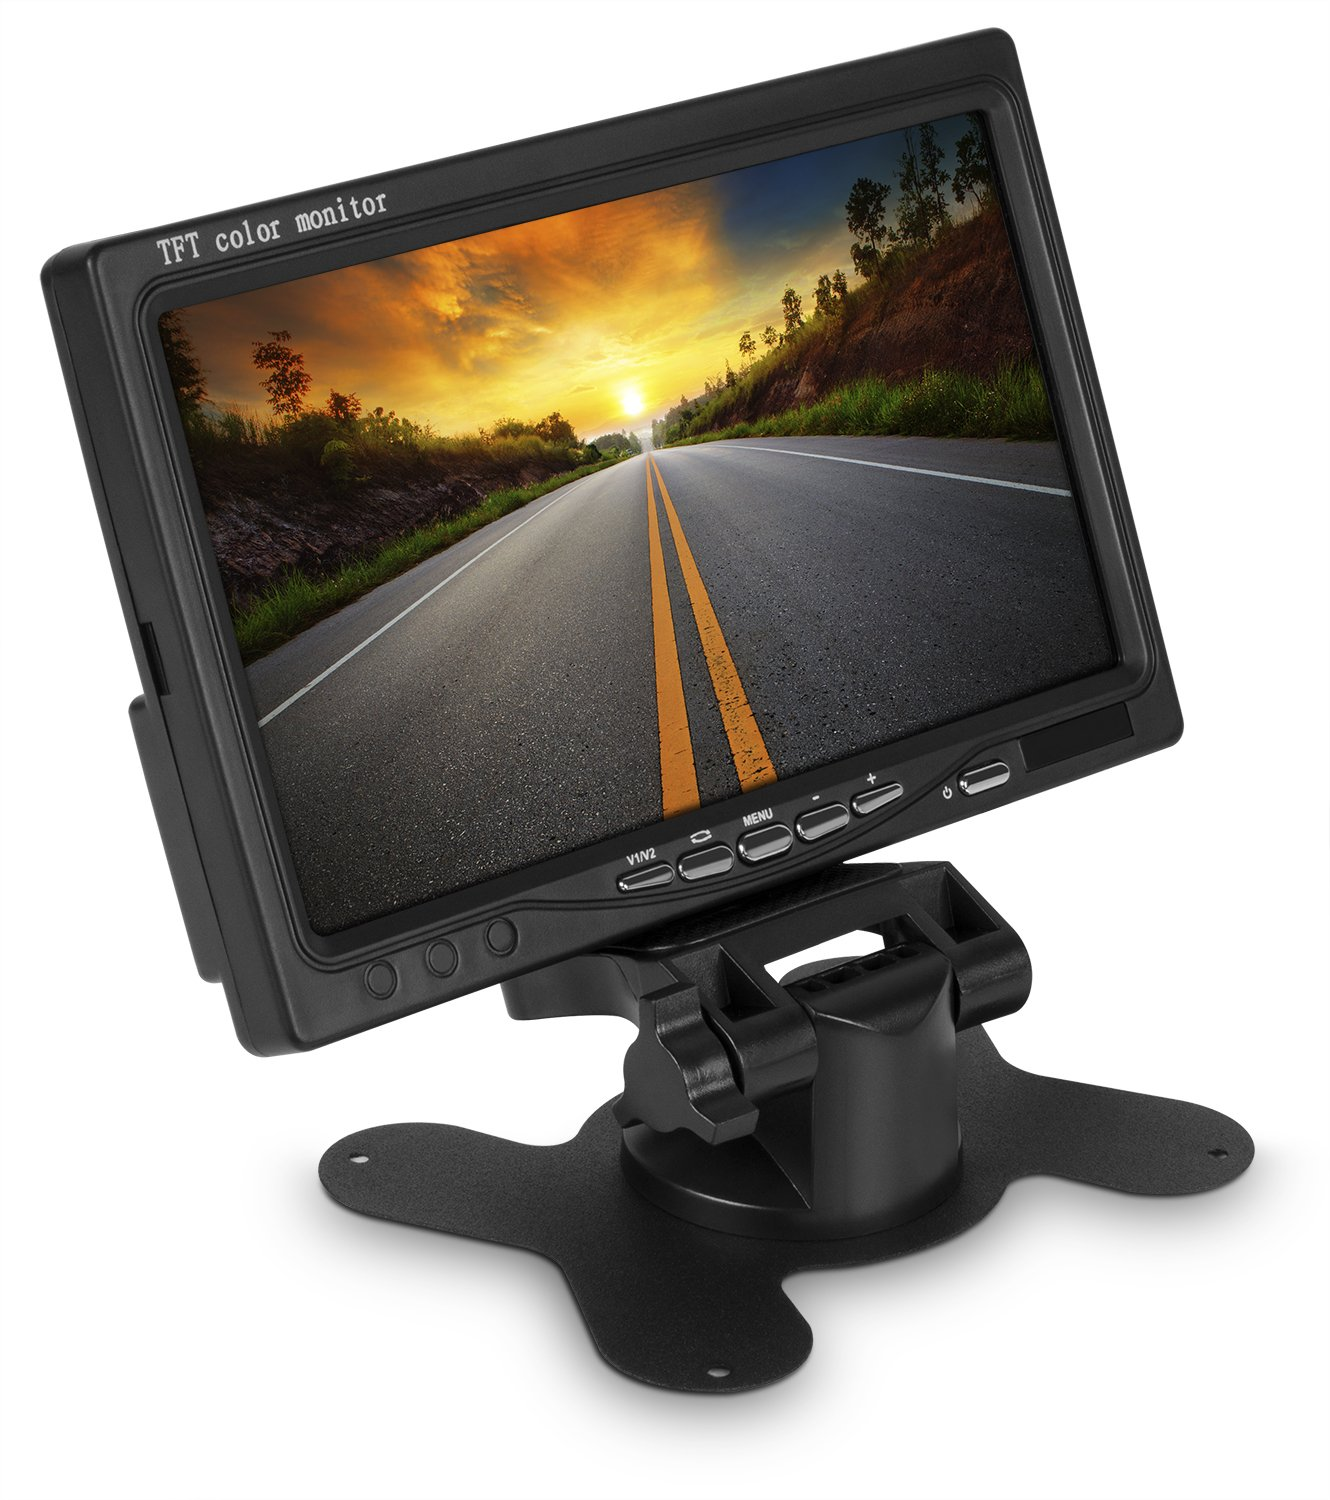 WickedHD 7 Inch High Resolution Rotating Color TFT LCD Rear View Camera Display Monitor with Remote Control and Mounting Bracket by WickedHD (Image #4)